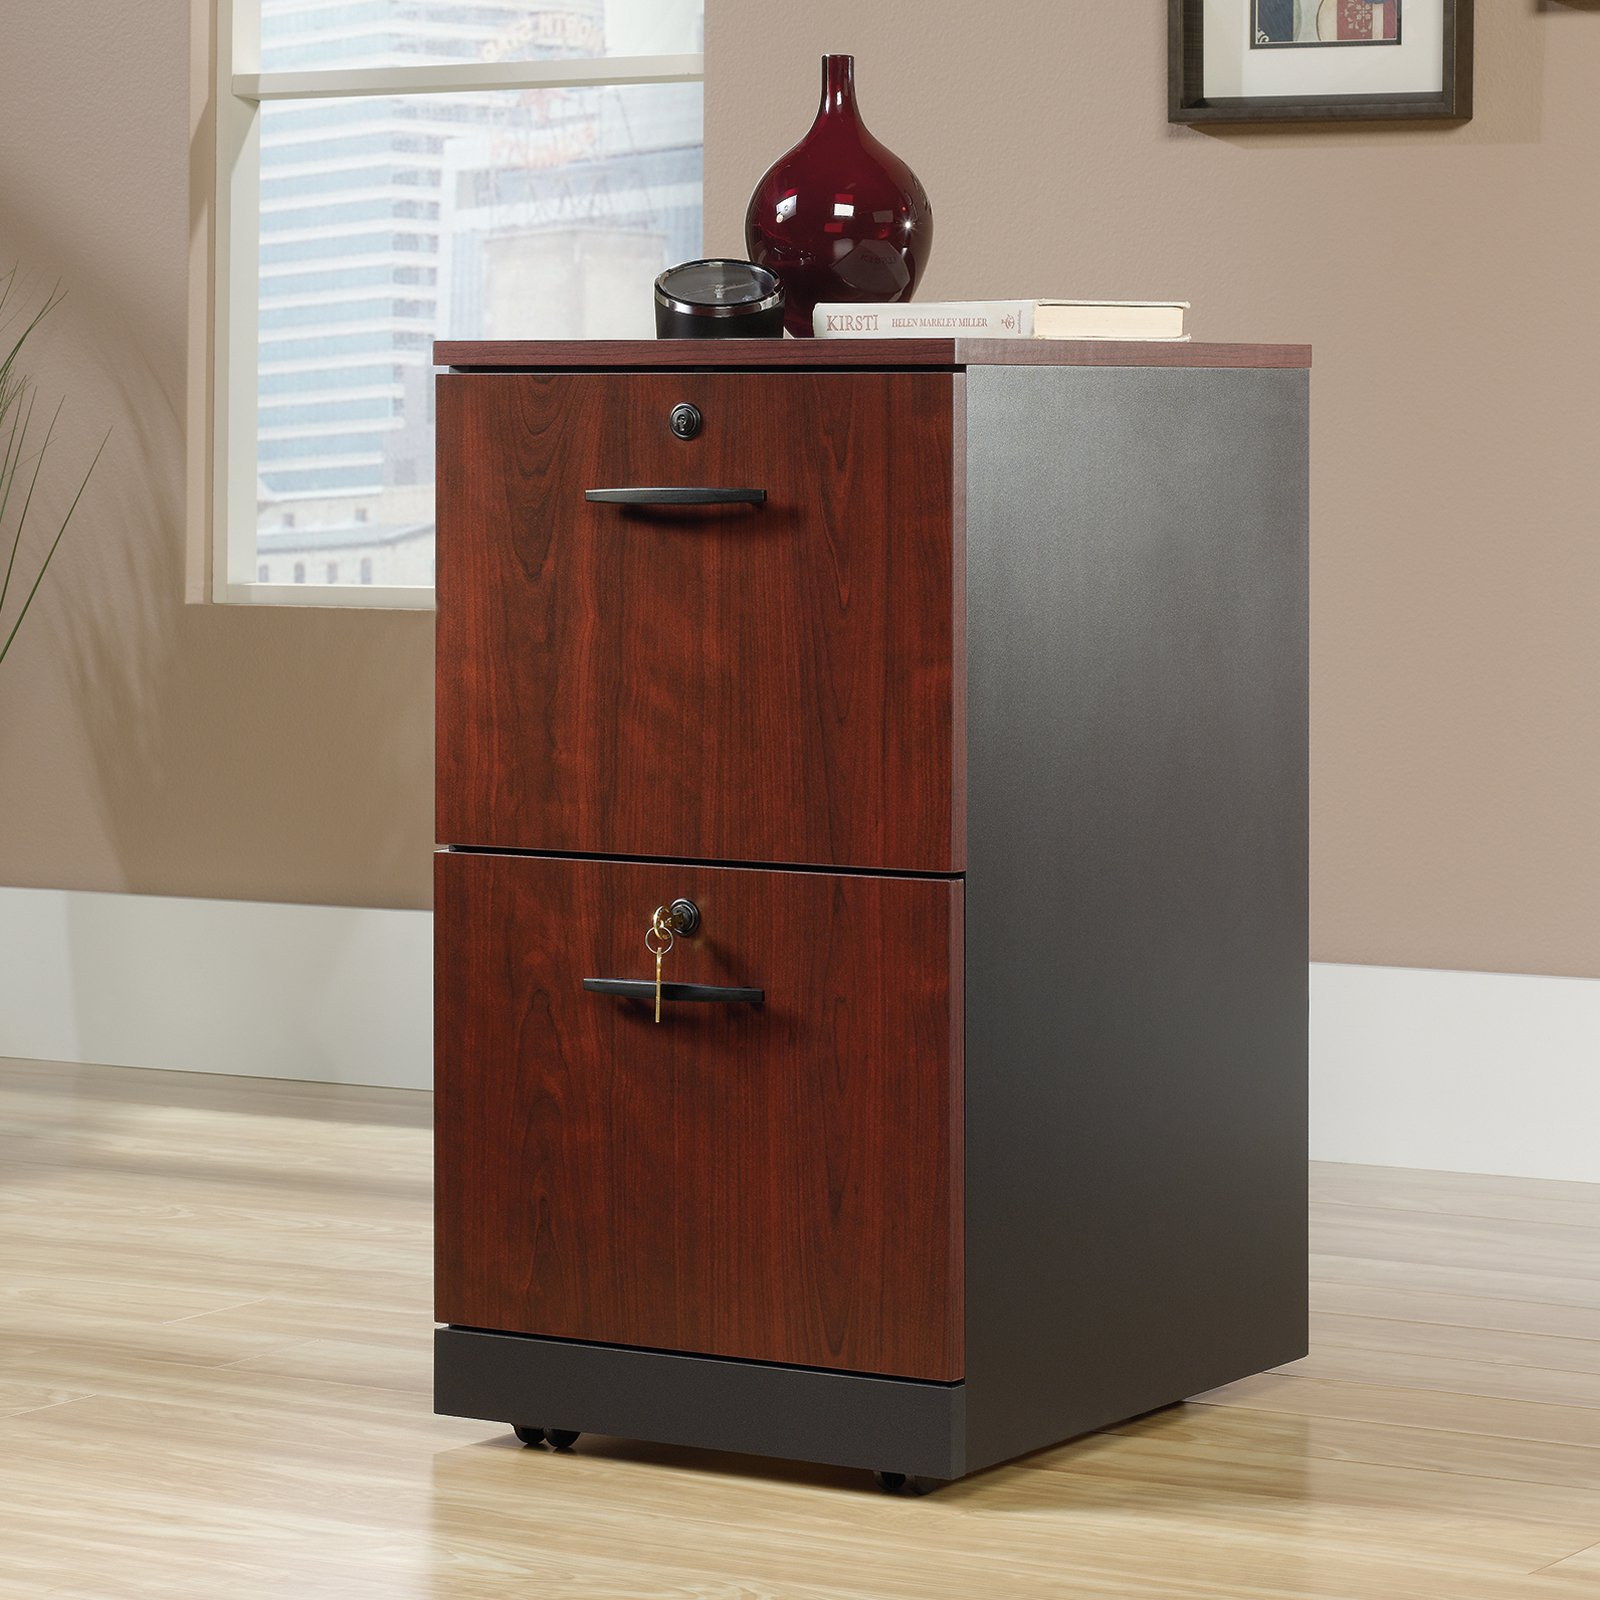 Sauder Via 2 Drawer File Cabinet - Walmart.com